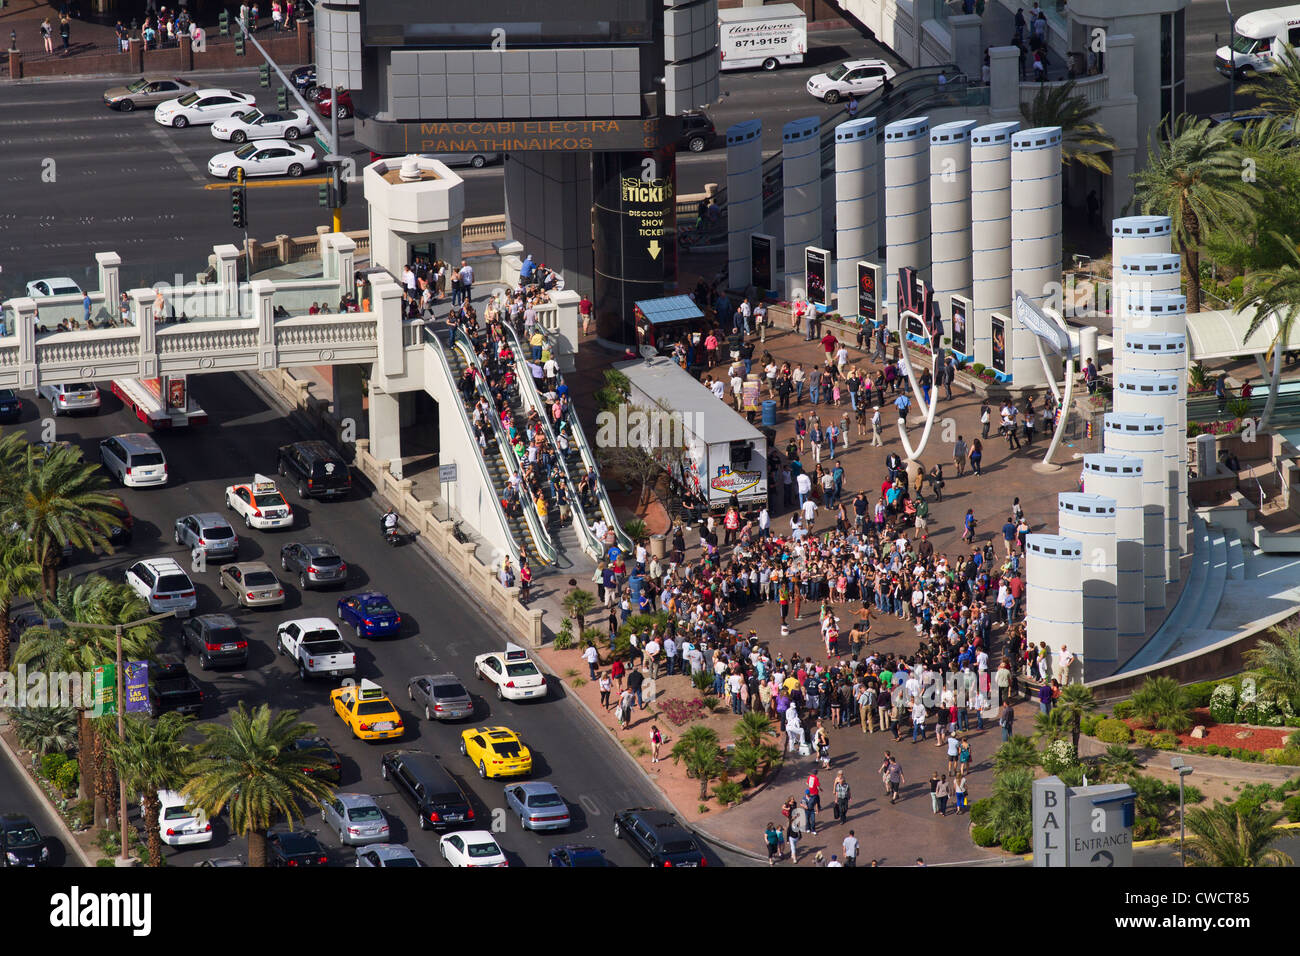 Traffic and congestion, Las Vegas, Nevada. - Stock Image